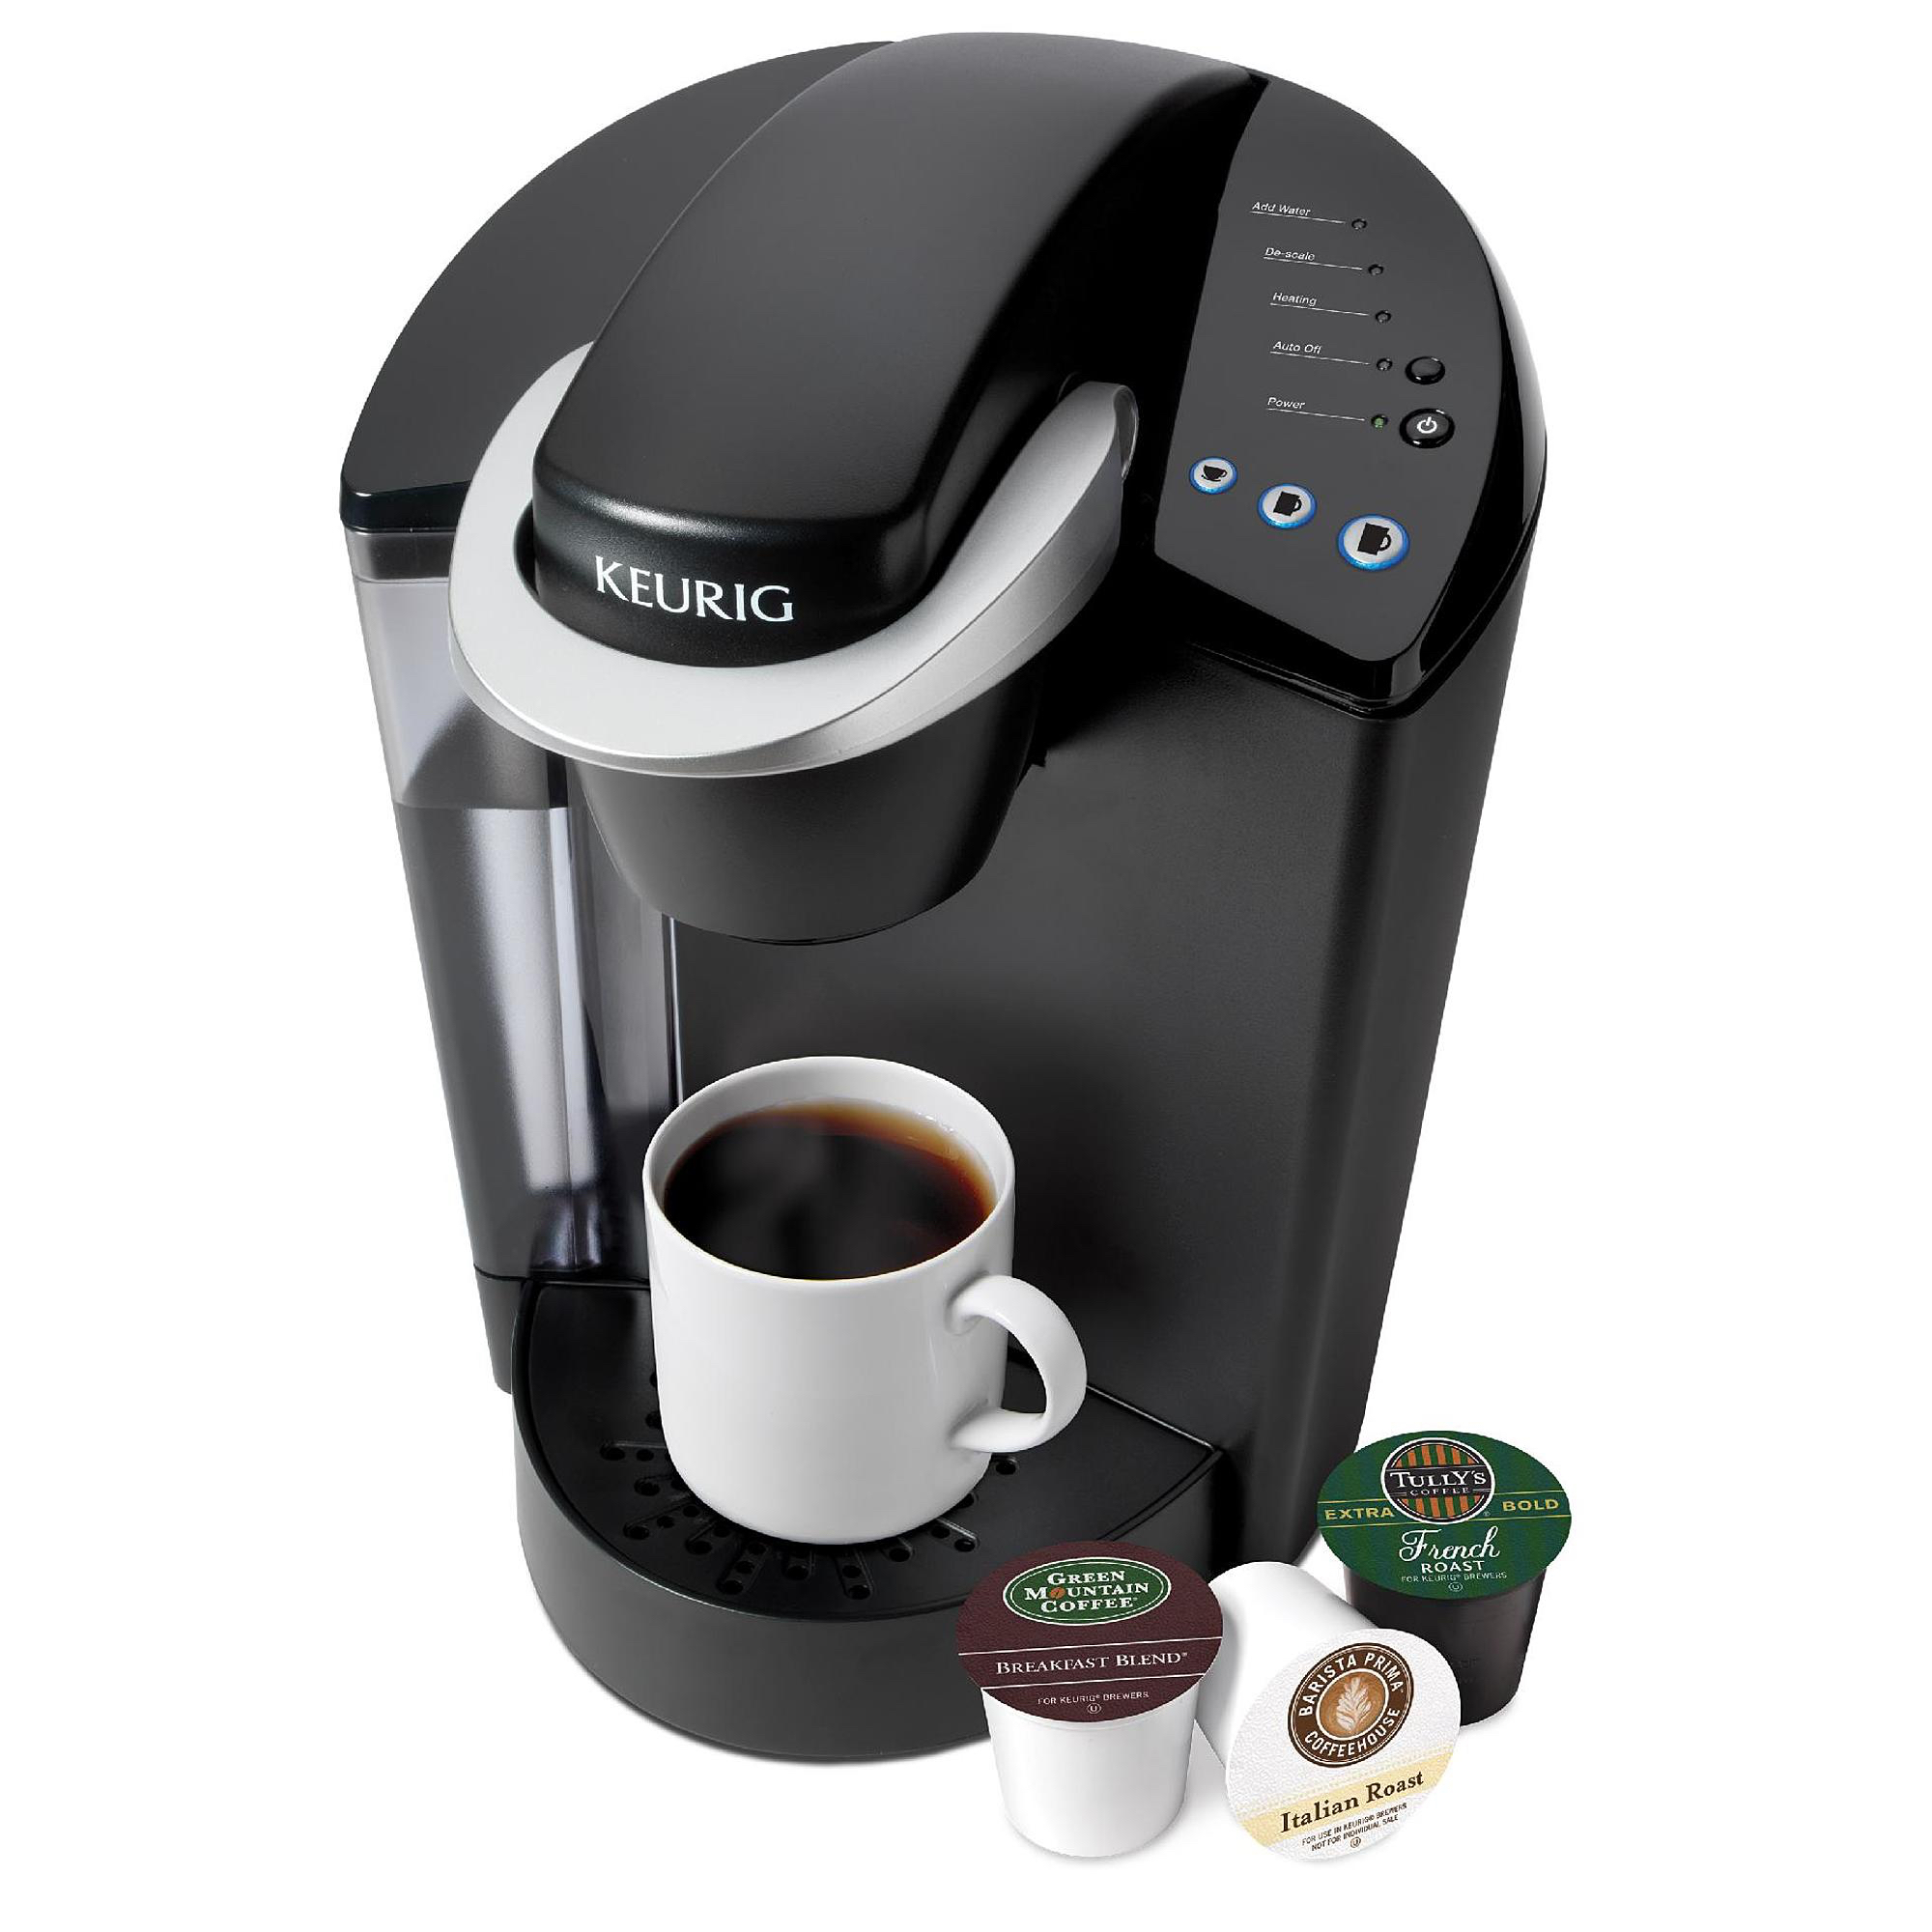 Keurig Coffee Maker At Sears : Sunday is national mother-in-law day! Here s five gifts she ll love